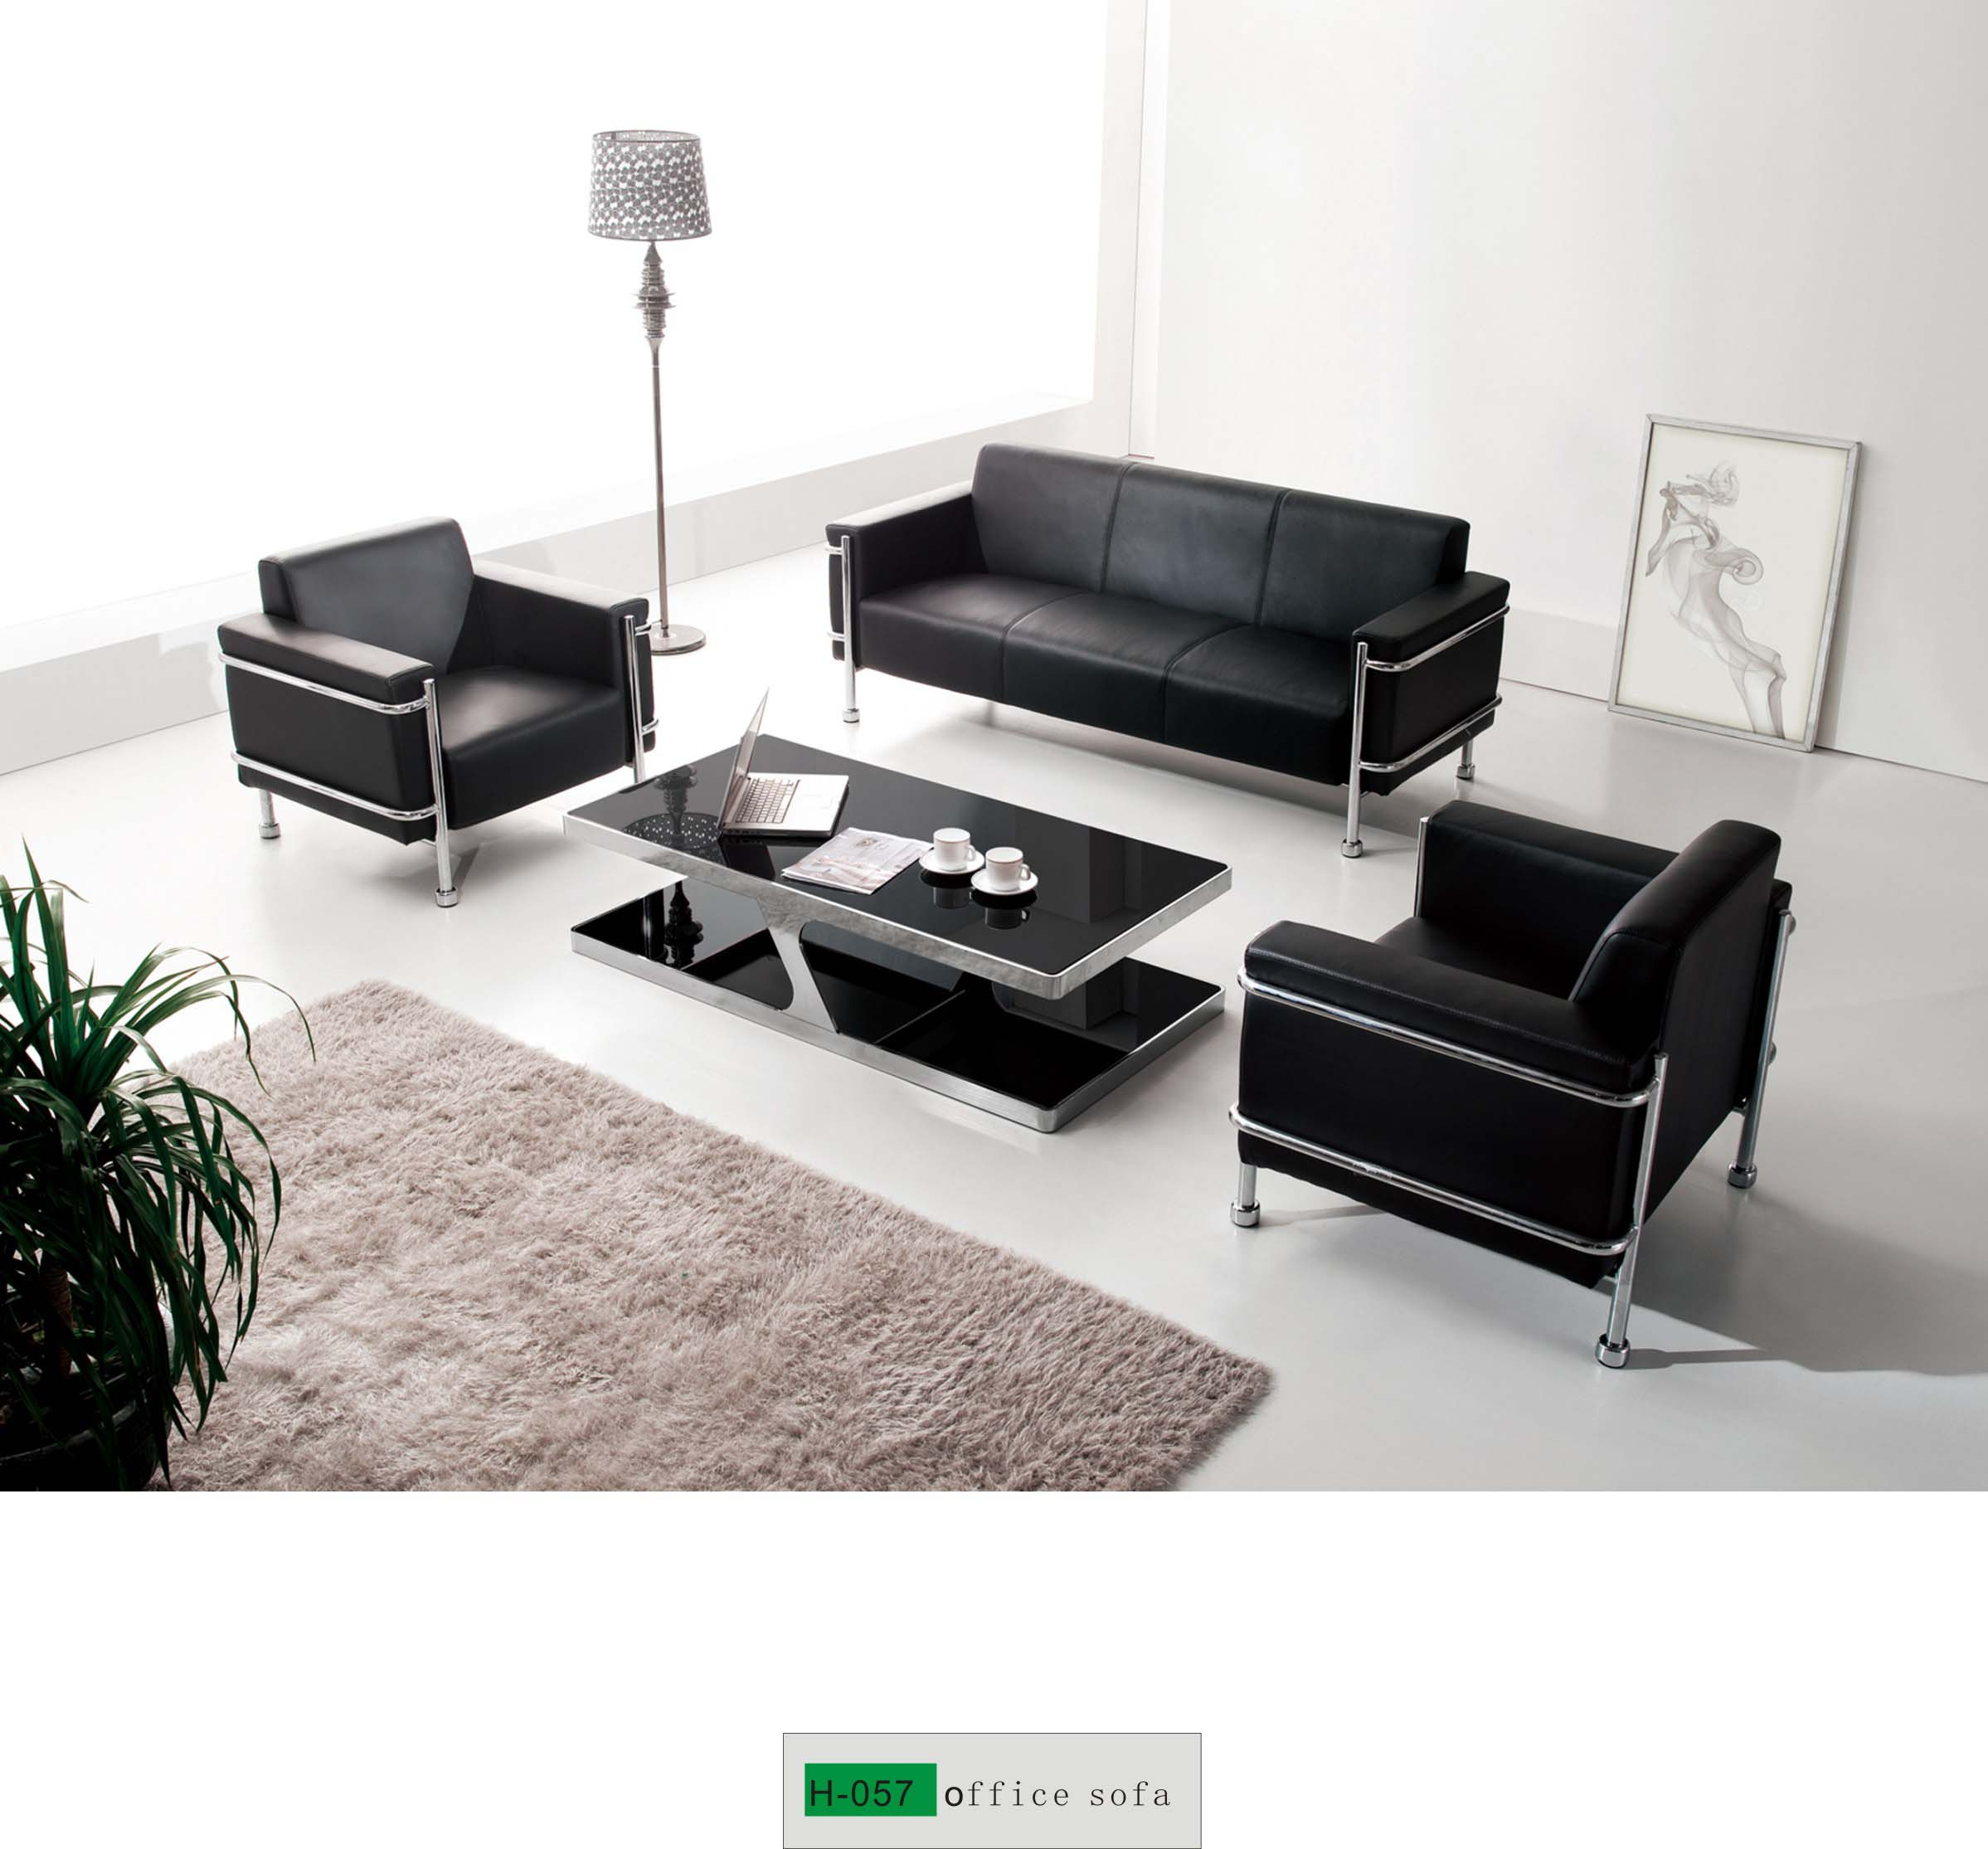 Modern Office Sofa H-057 - Buy black office sofa, commercial office ...